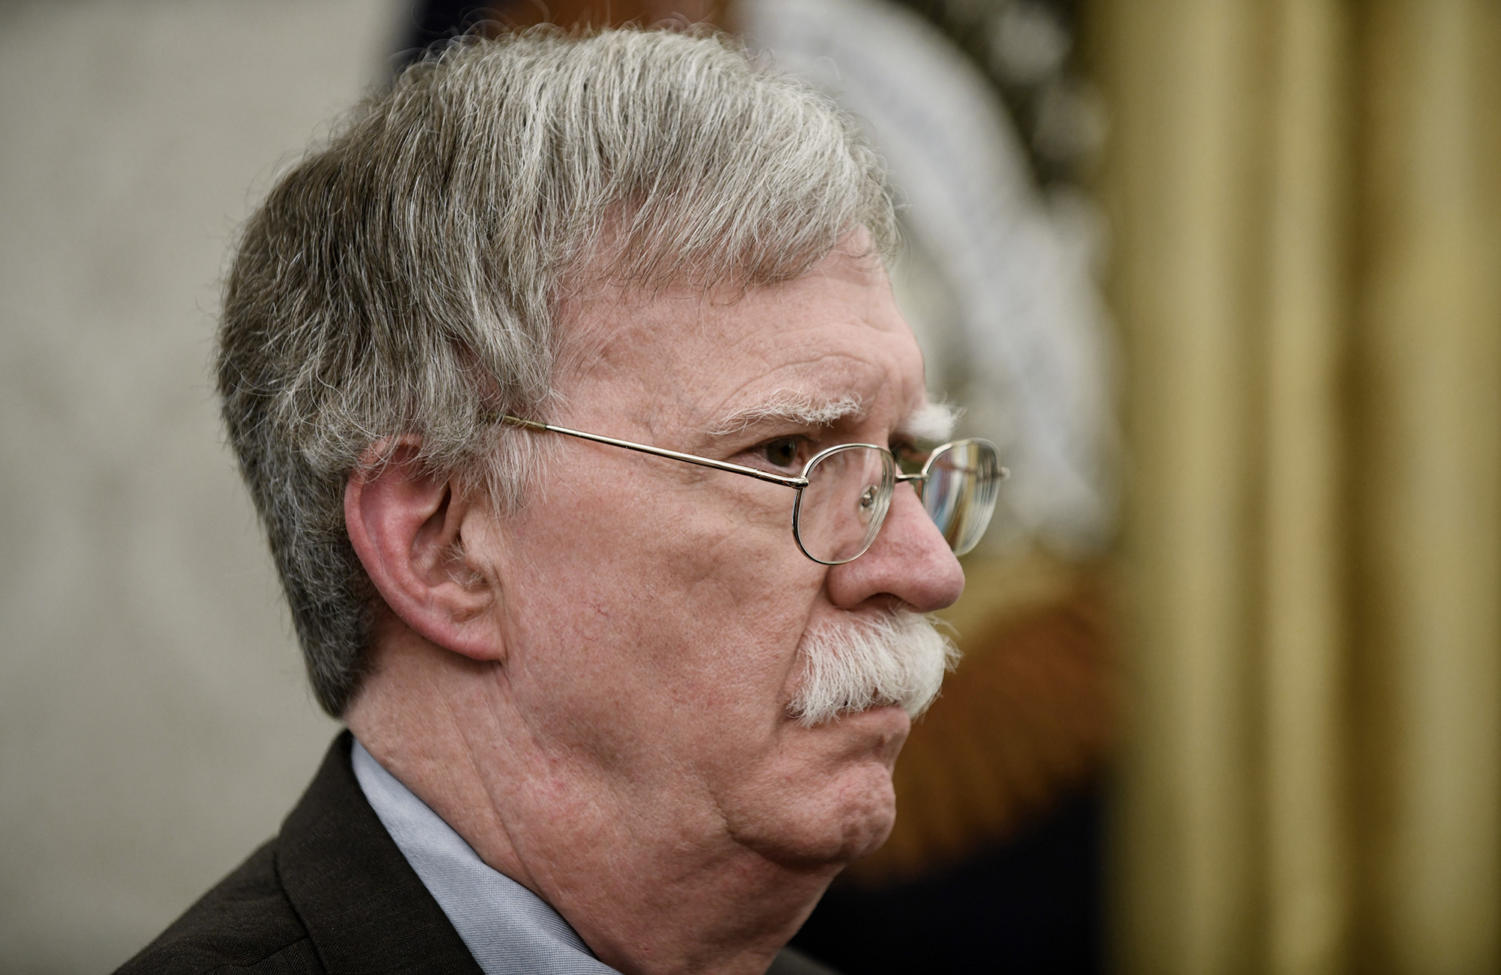 National security adviser John Bolton listen to U.S. President Donald Trump about the new directive centralizing all military space functions under a new Space Force, which will be overseen by the Department of the Air Force, in the Oval Office of the White House on Tuesday, February 19, 2019, in Washington, D.C.